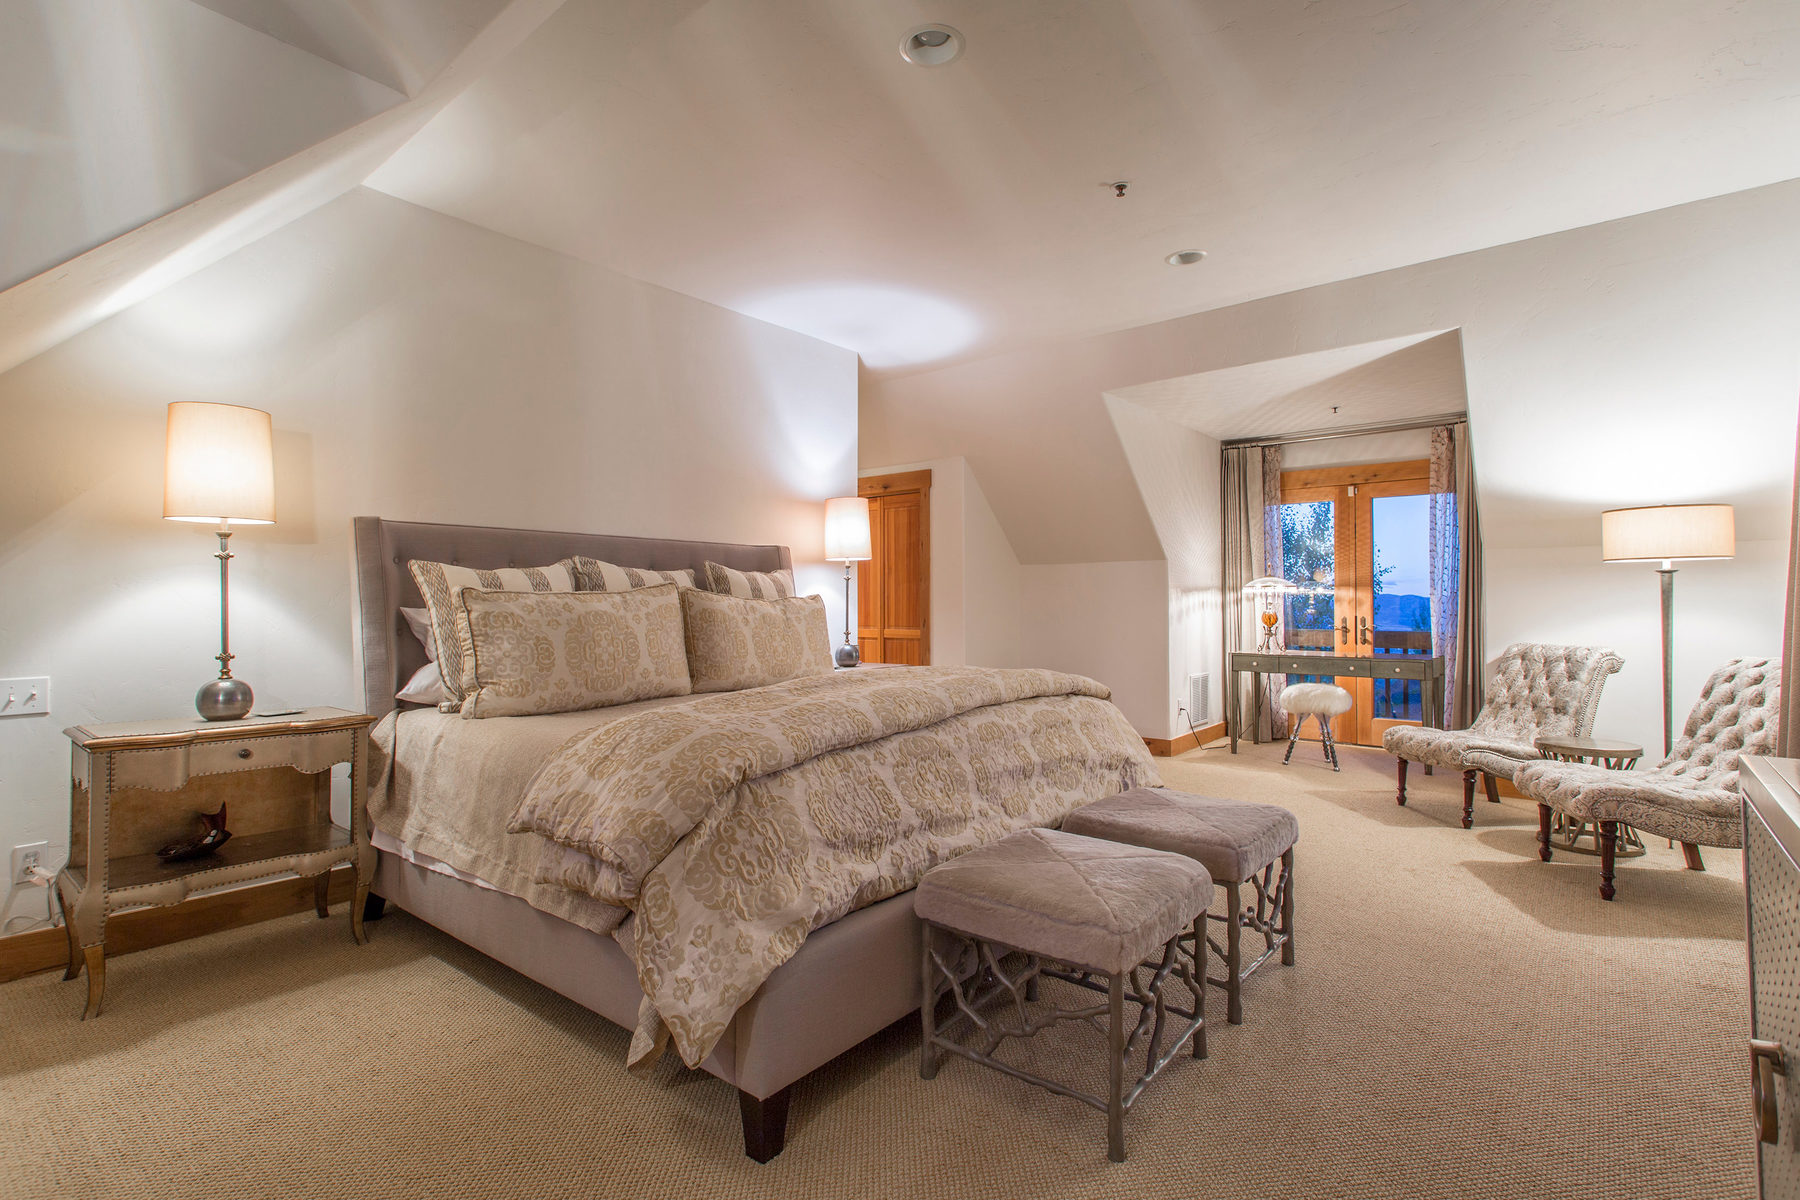 Additional photo for property listing at The Takeley Barn, Ultra Rare, Irreplaceable Rustic Chic in The Aerie 1403 Eagle Way Park City, Utah 84060 United States